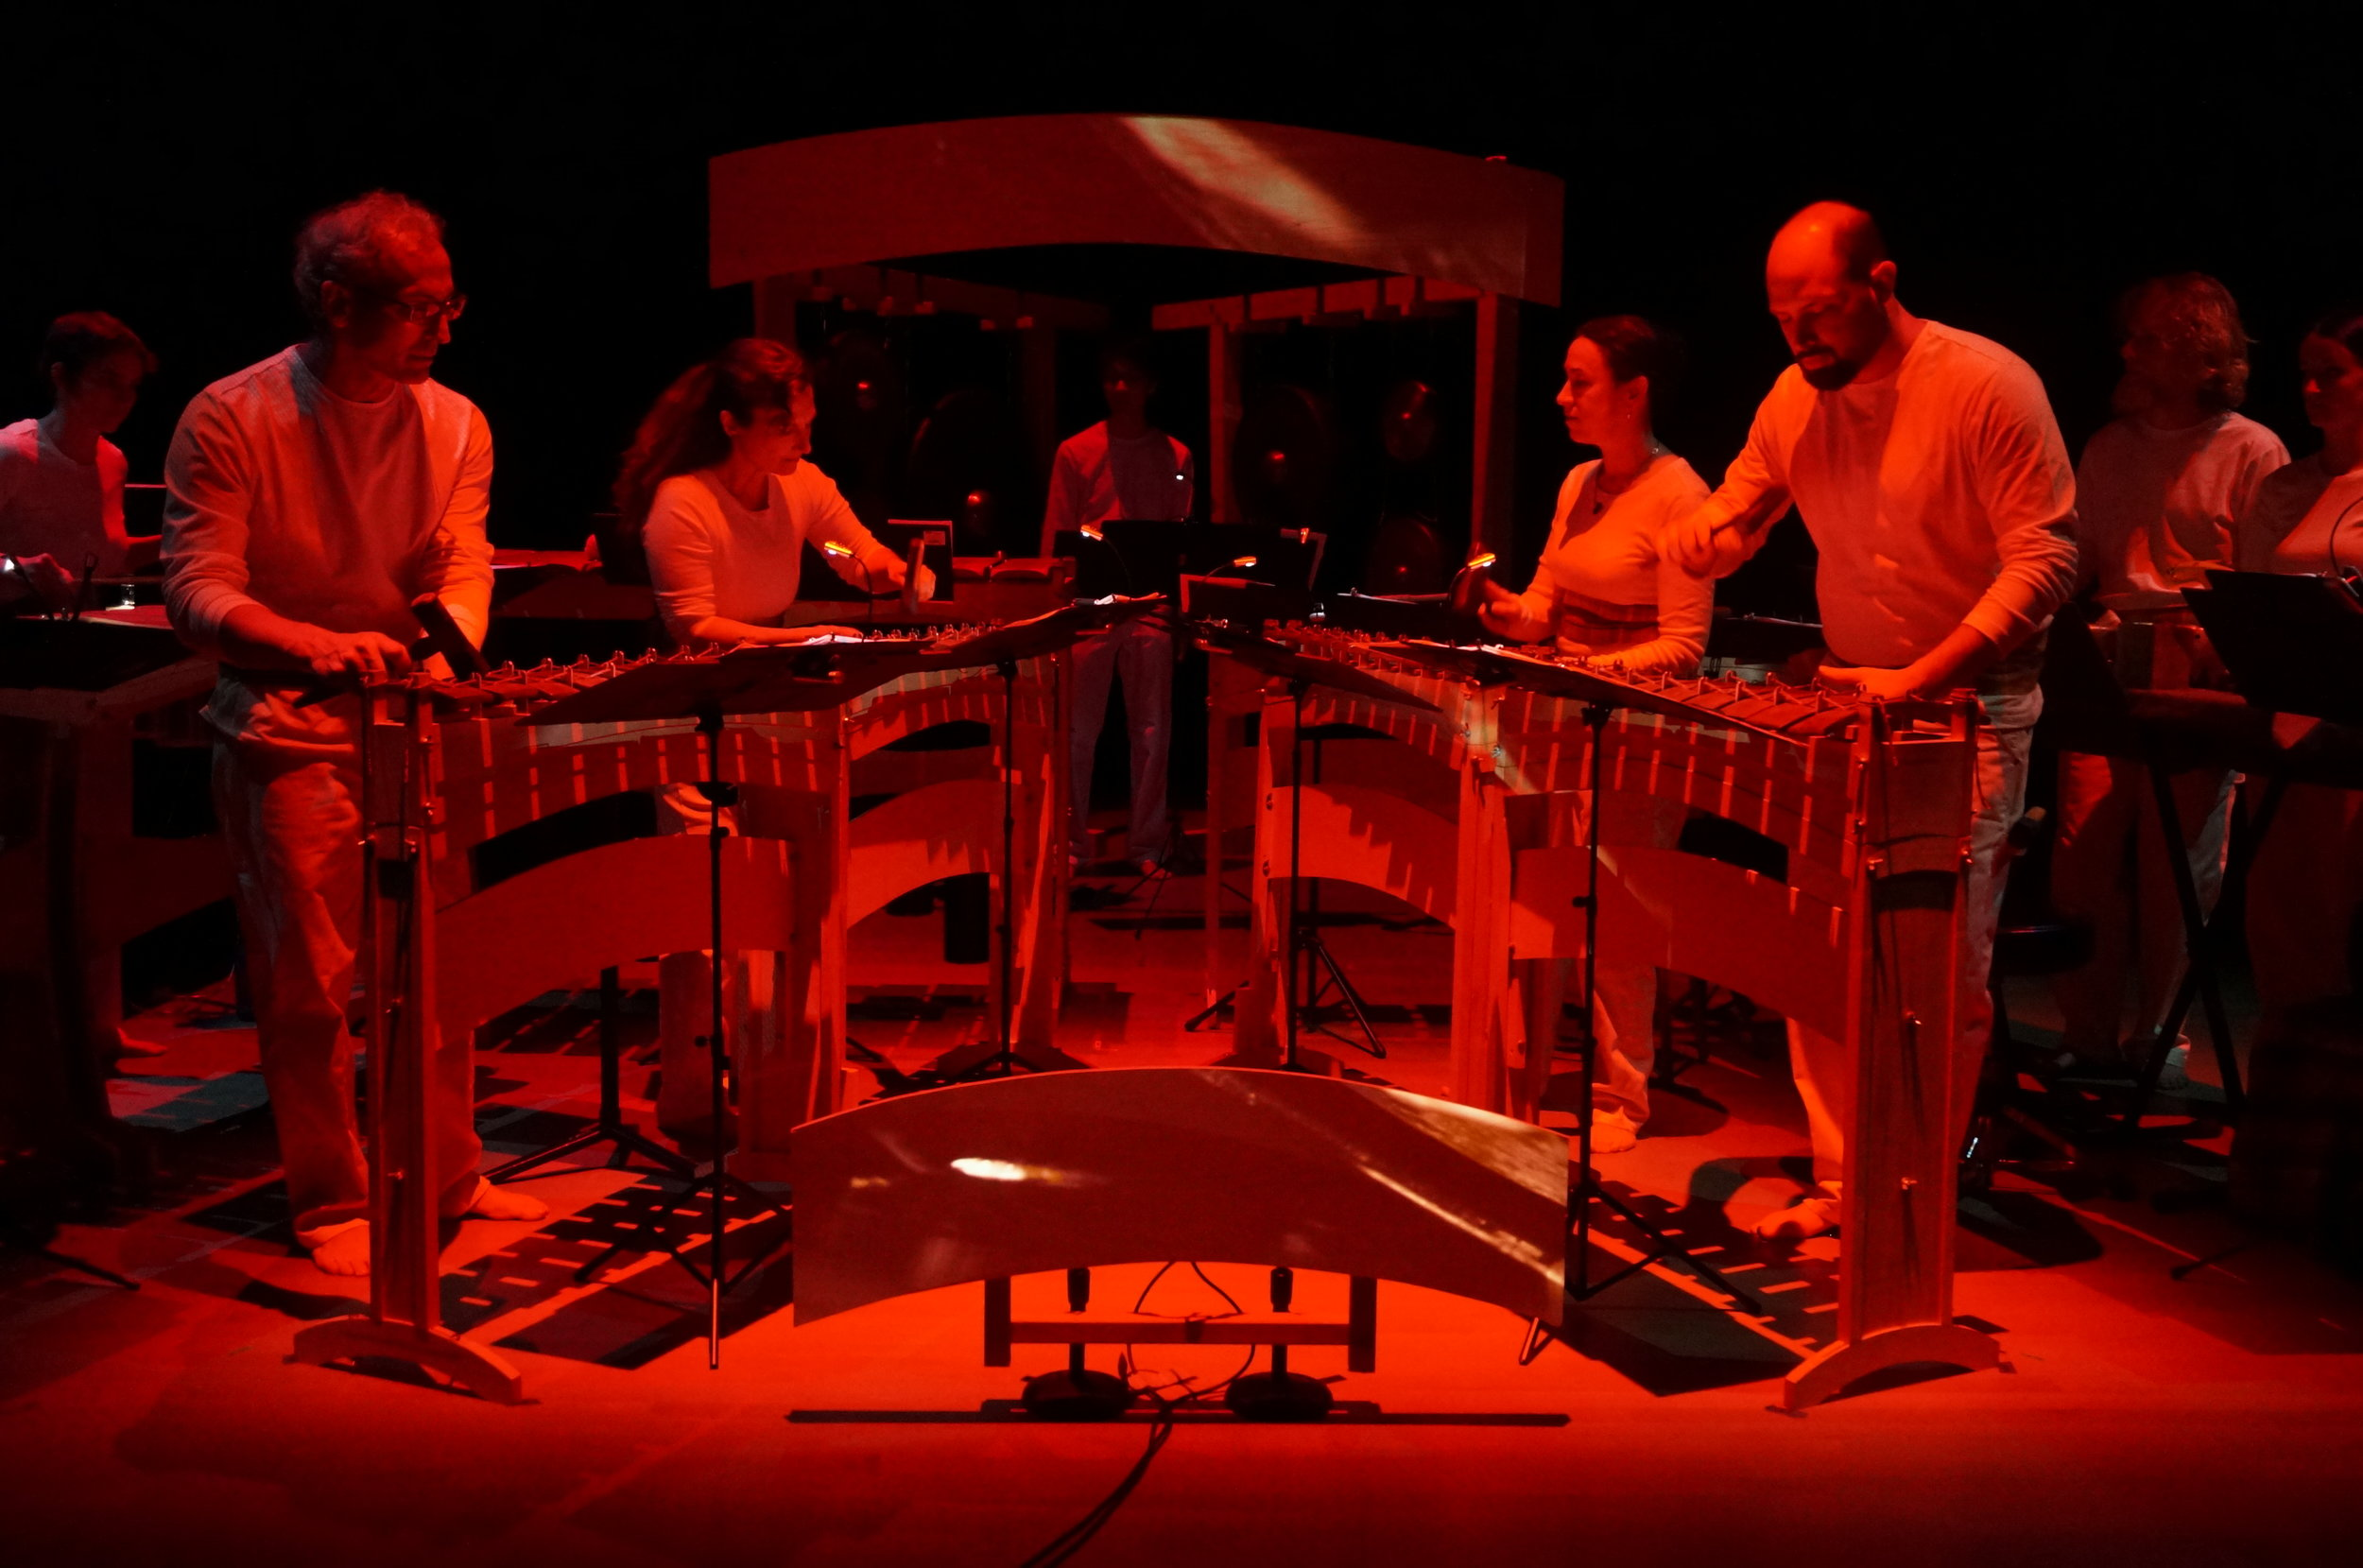 The Lightbulb Ensemble - Performing Mikrokosma, co-composed by Vitale and Brian Baumbusch, at the Yerba Buena Center for the Arts, 2015